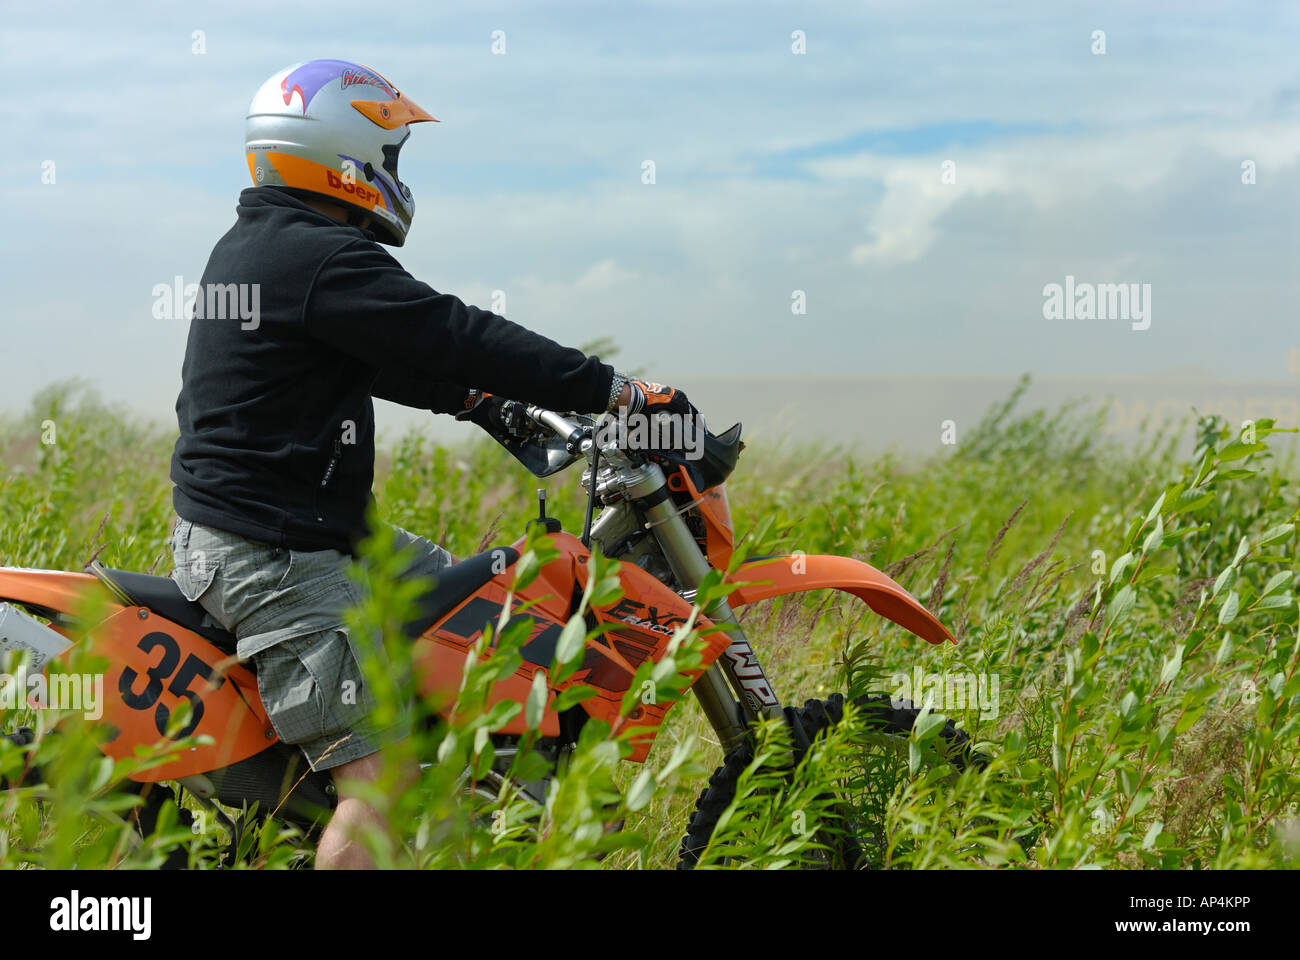 Motorbiker on a KTM motorcycle watching the Rallye Dresden Breslau 2007 - Stock Image